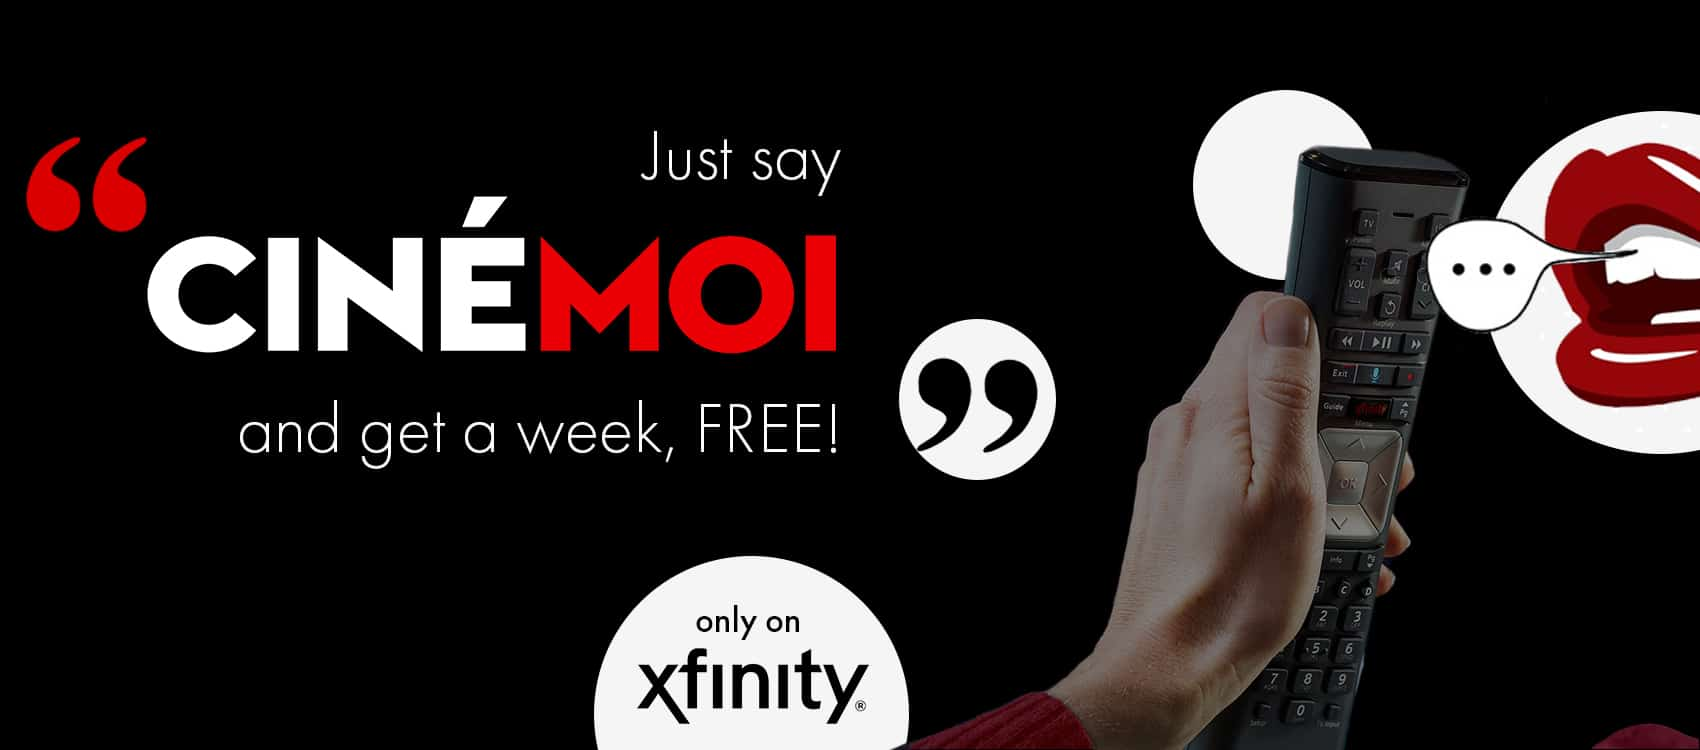 Watch movies, fashion & more, 7 days for free with Cinémoi on Xfinity 2